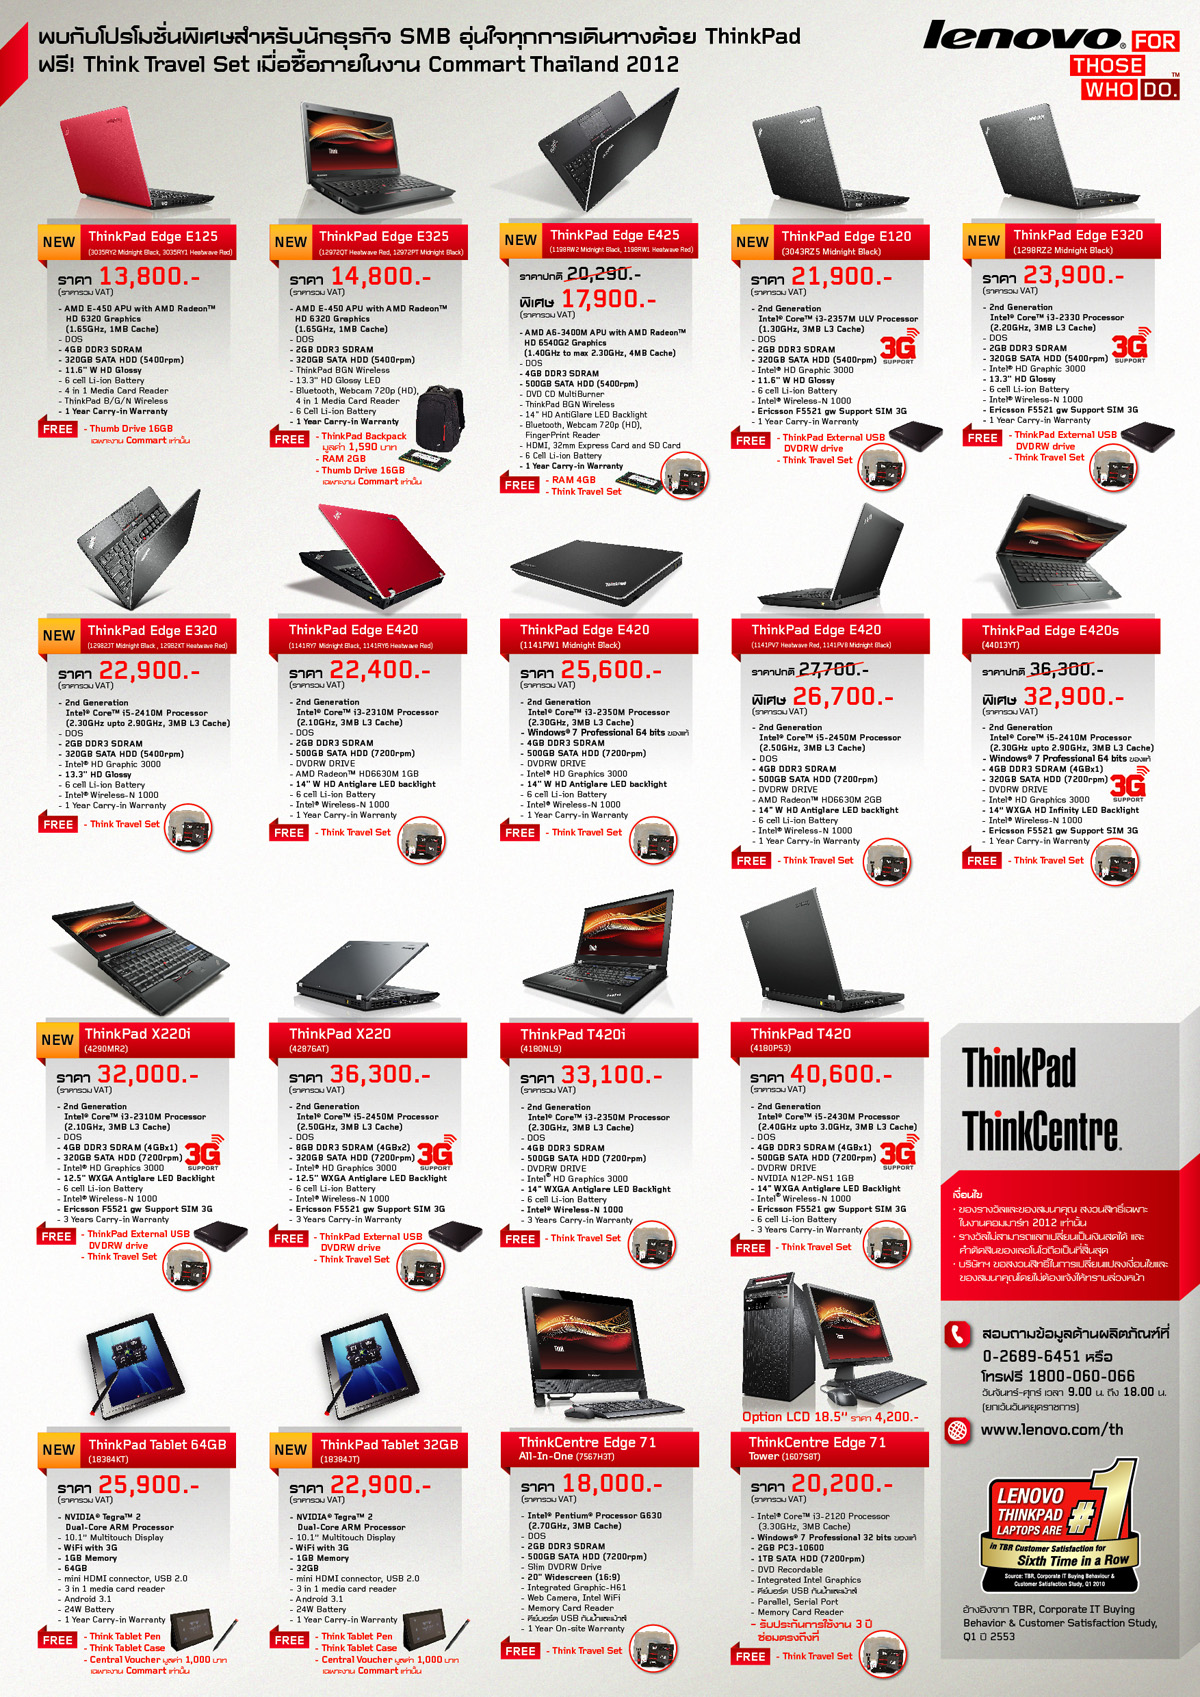 AW Lenovo ThinkPad Promotion for Commart March 2012 Leaflet A3 Back 01